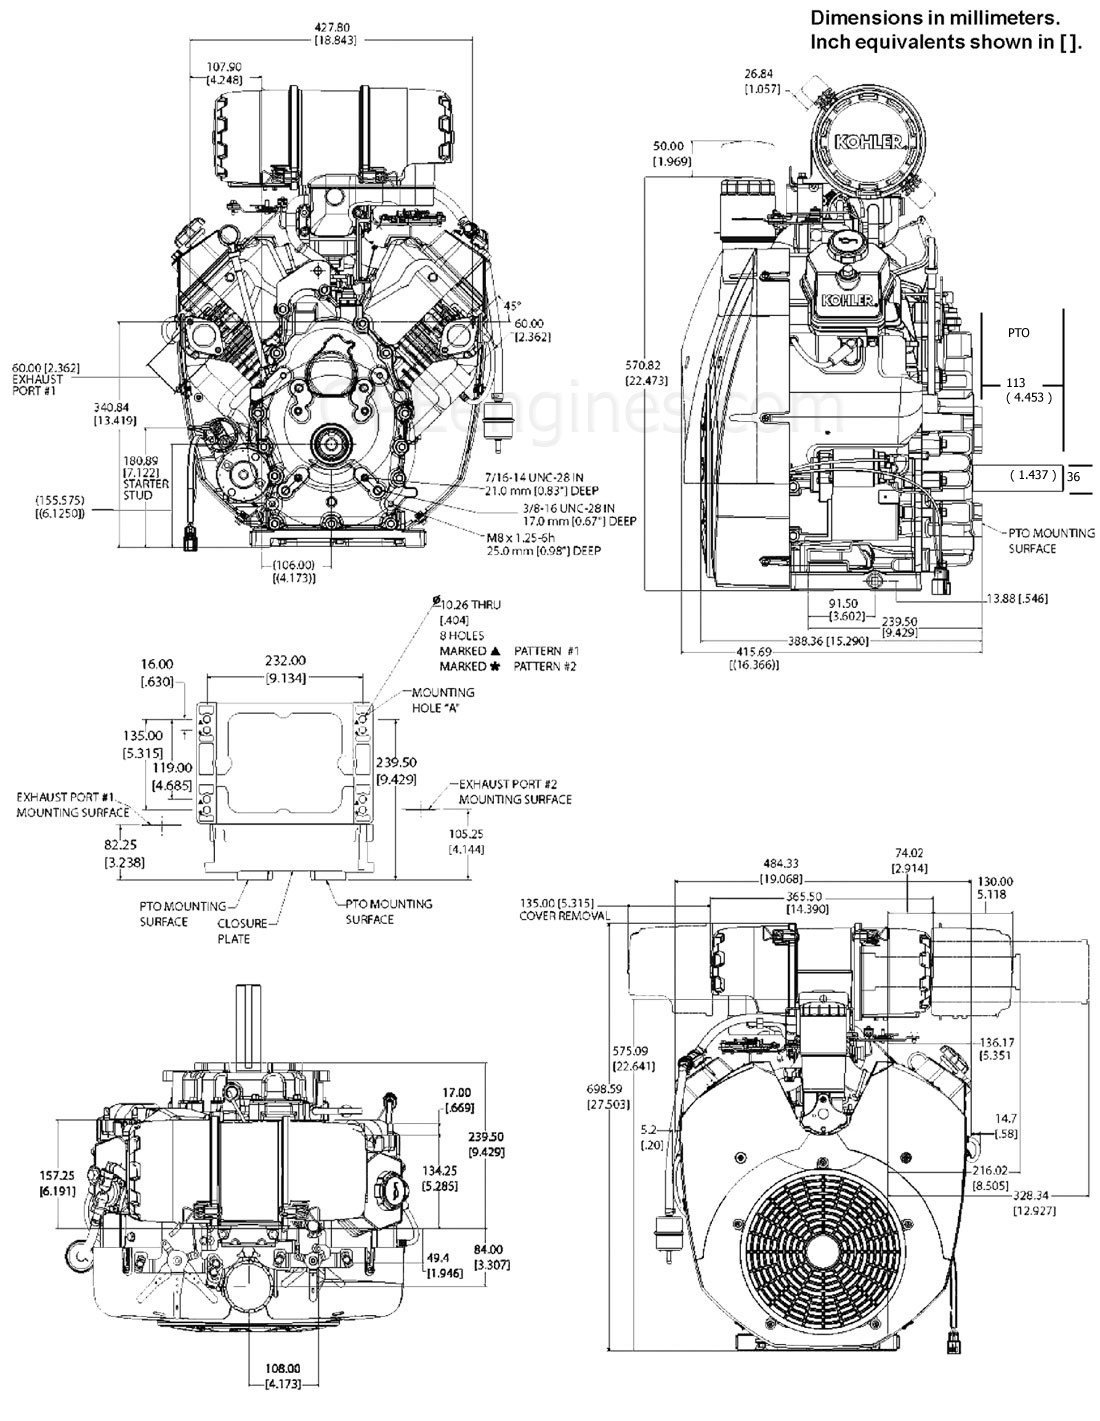 CH980_drawings ch940 ch960 ch980 ch1000 drawings kohler engines and parts store kohler command pro 27 wiring diagram at n-0.co